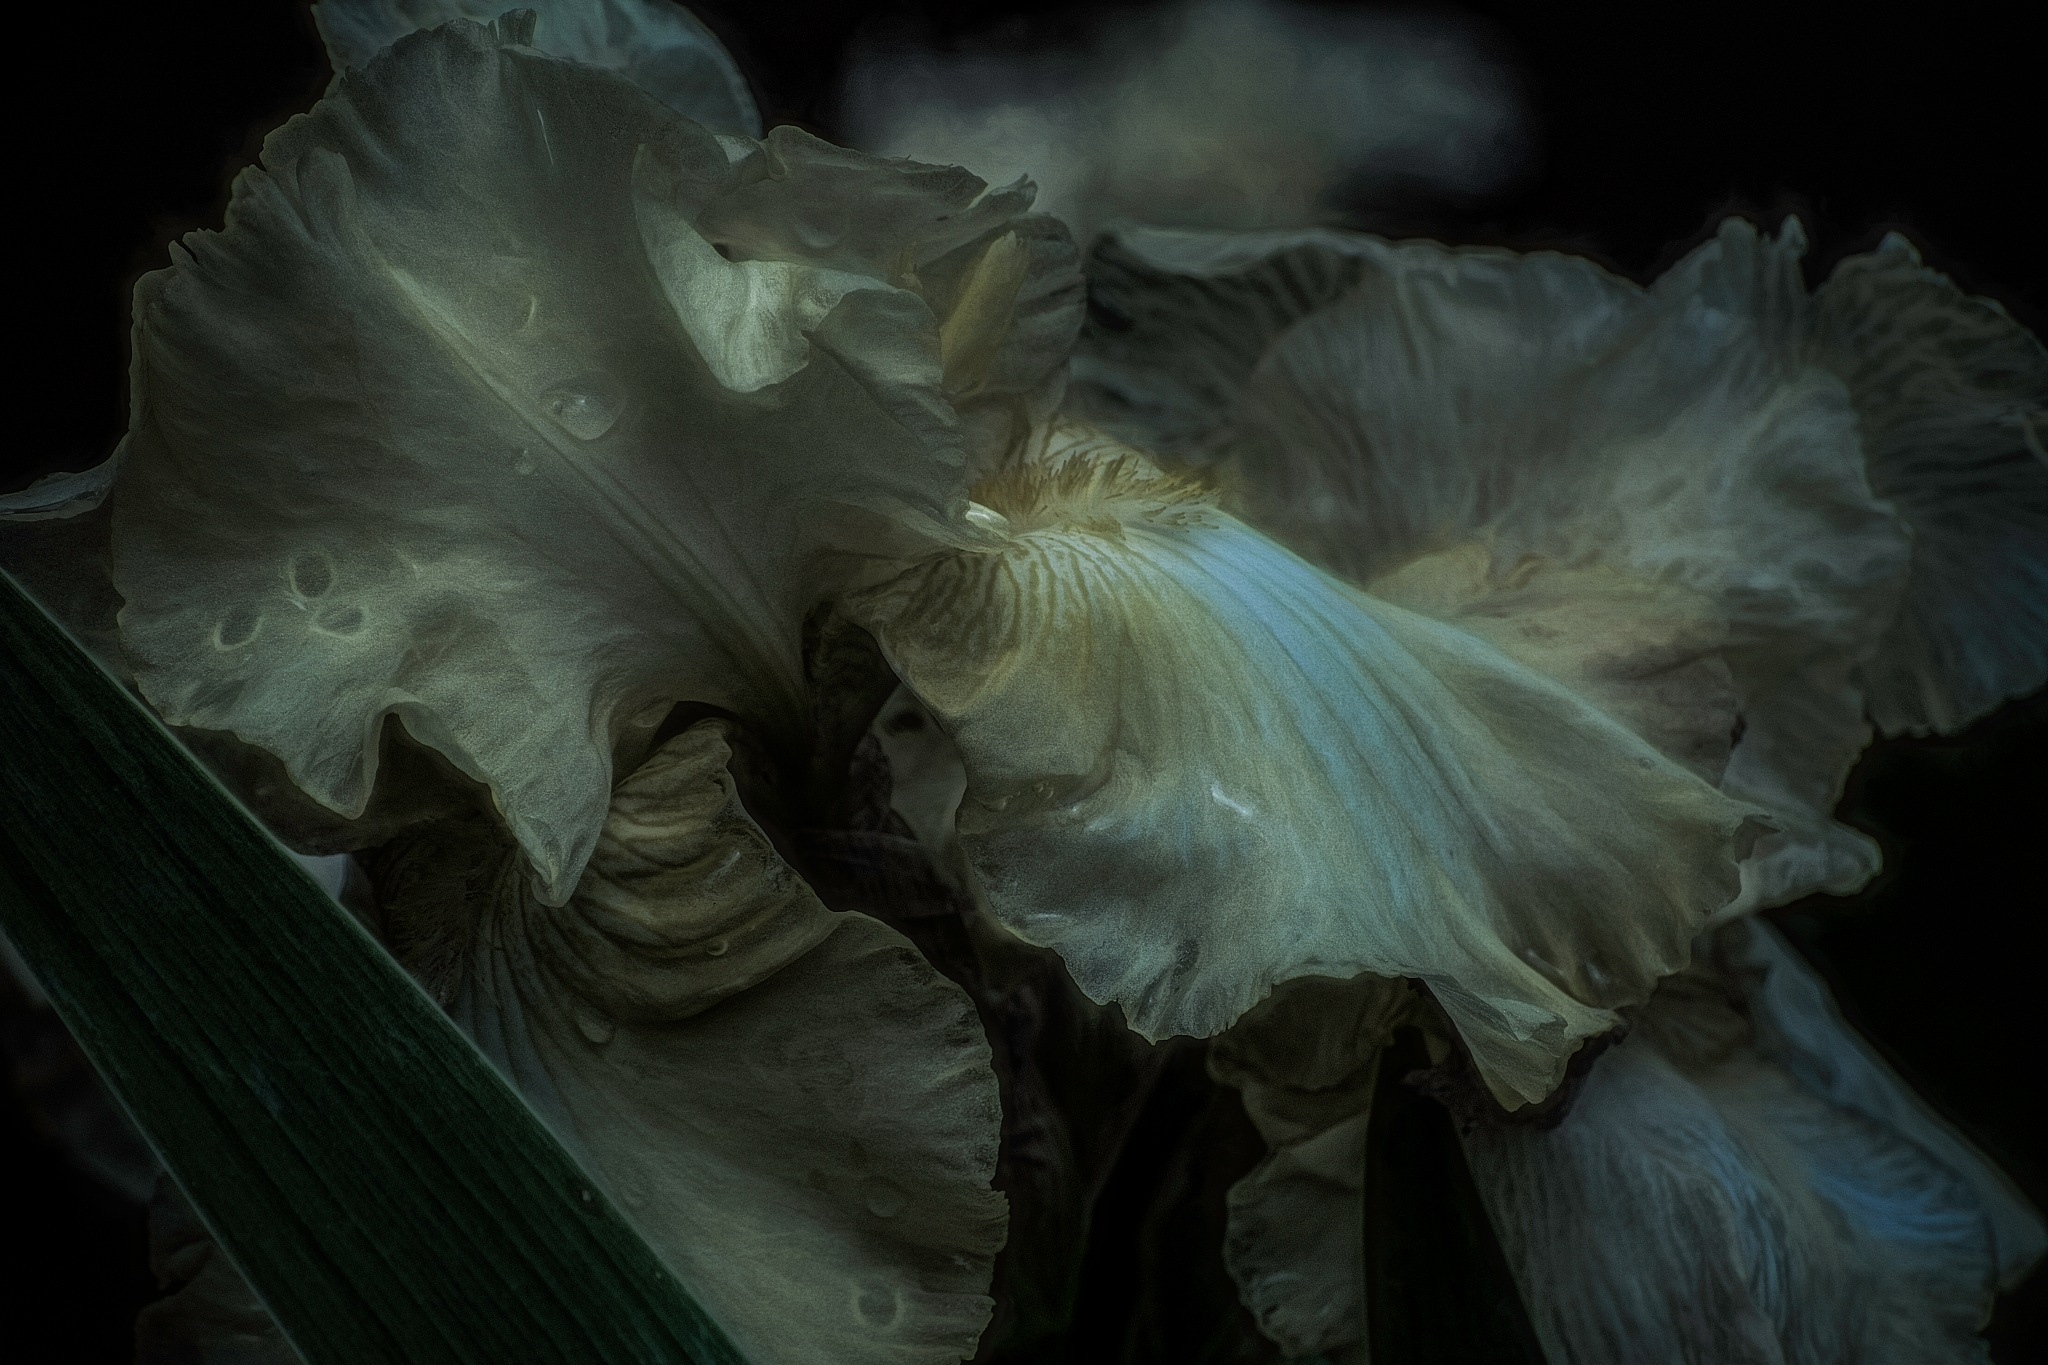 One More Dark Iris by JohnEllingson